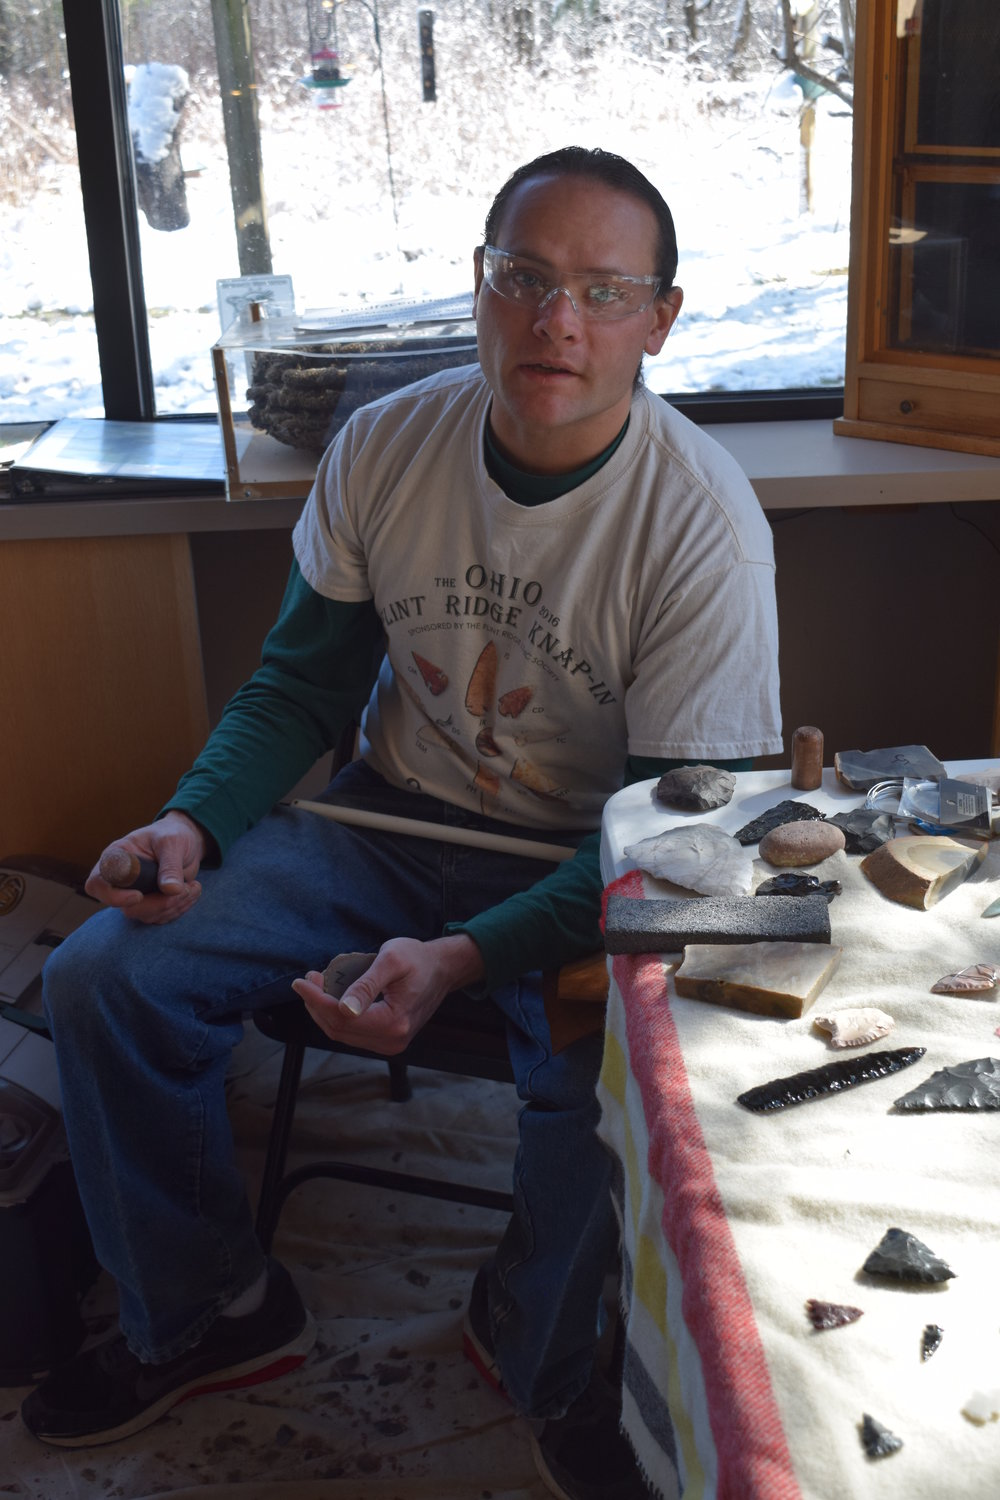 Jeremy Snyder teaches Archaeology at the Mohican Outdoor School in Belleville, Ohio. He also teaches classic flint knapping techniques.